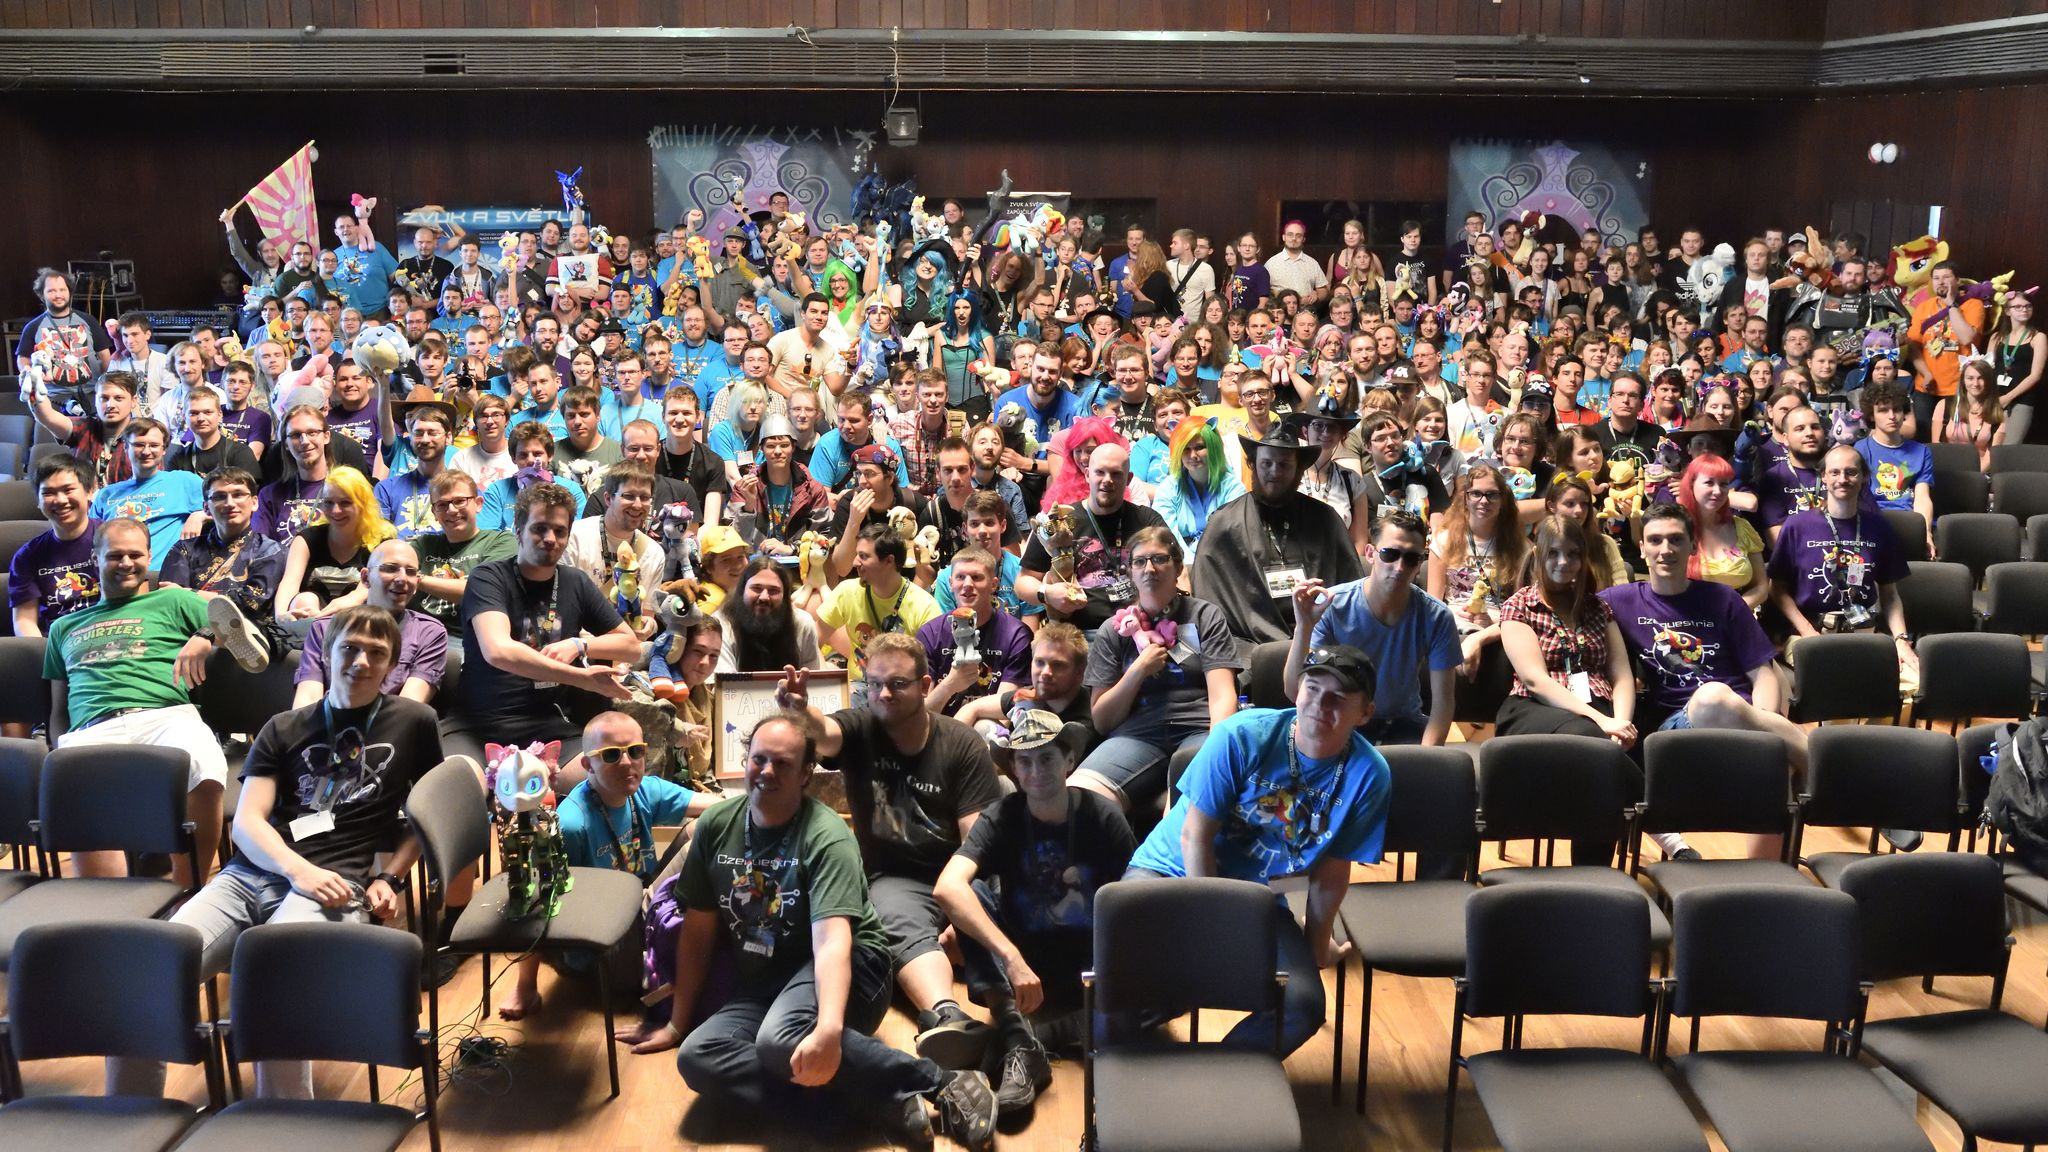 Czequestria 2017 – group photo